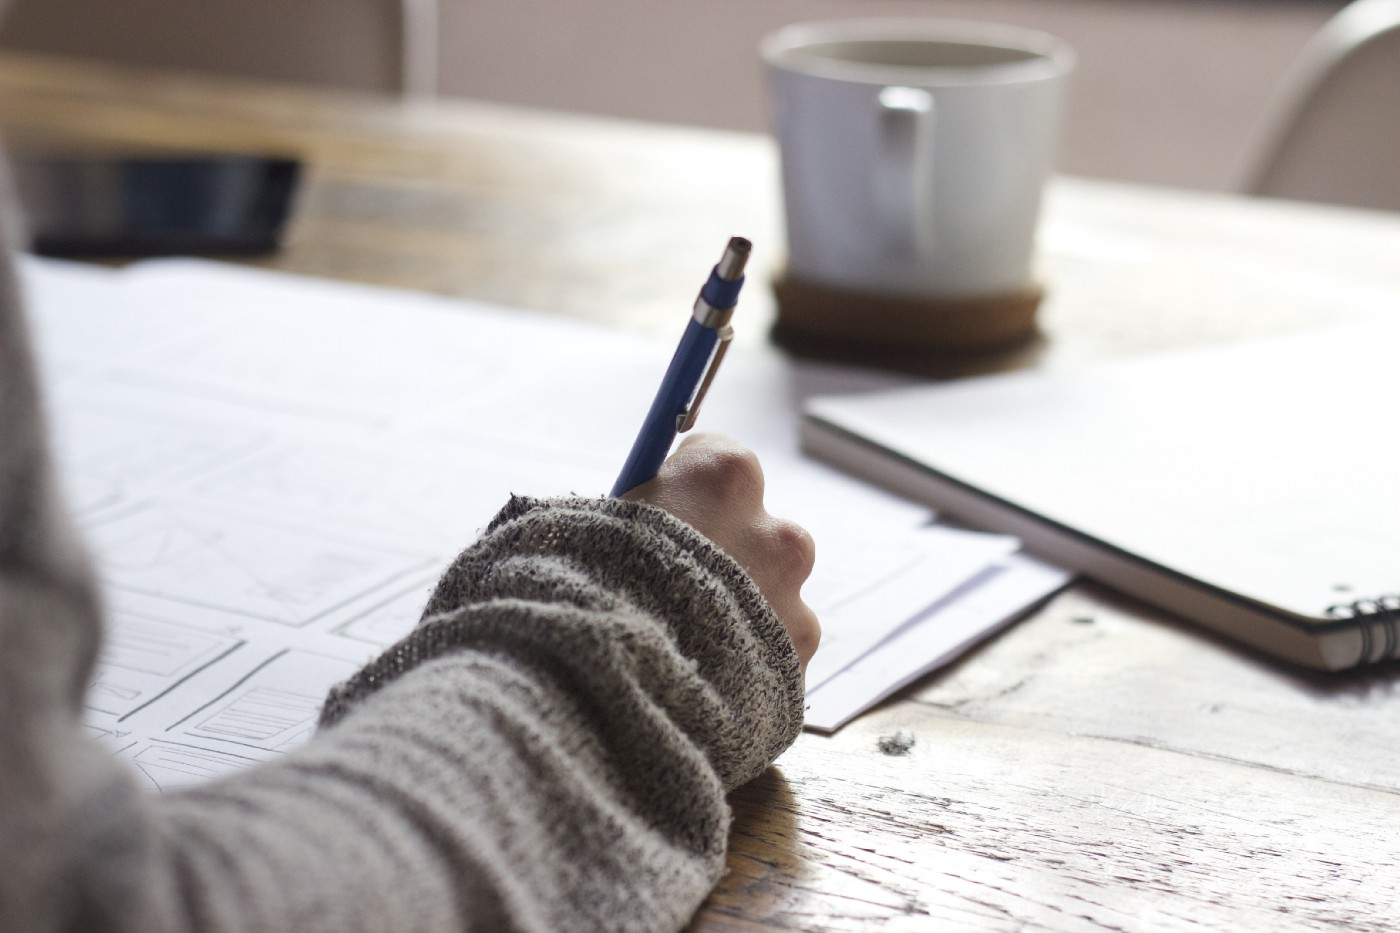 A person writes notes on freestanding papers next to a presumably full notebook. On the same table, a cup of espresso sits.